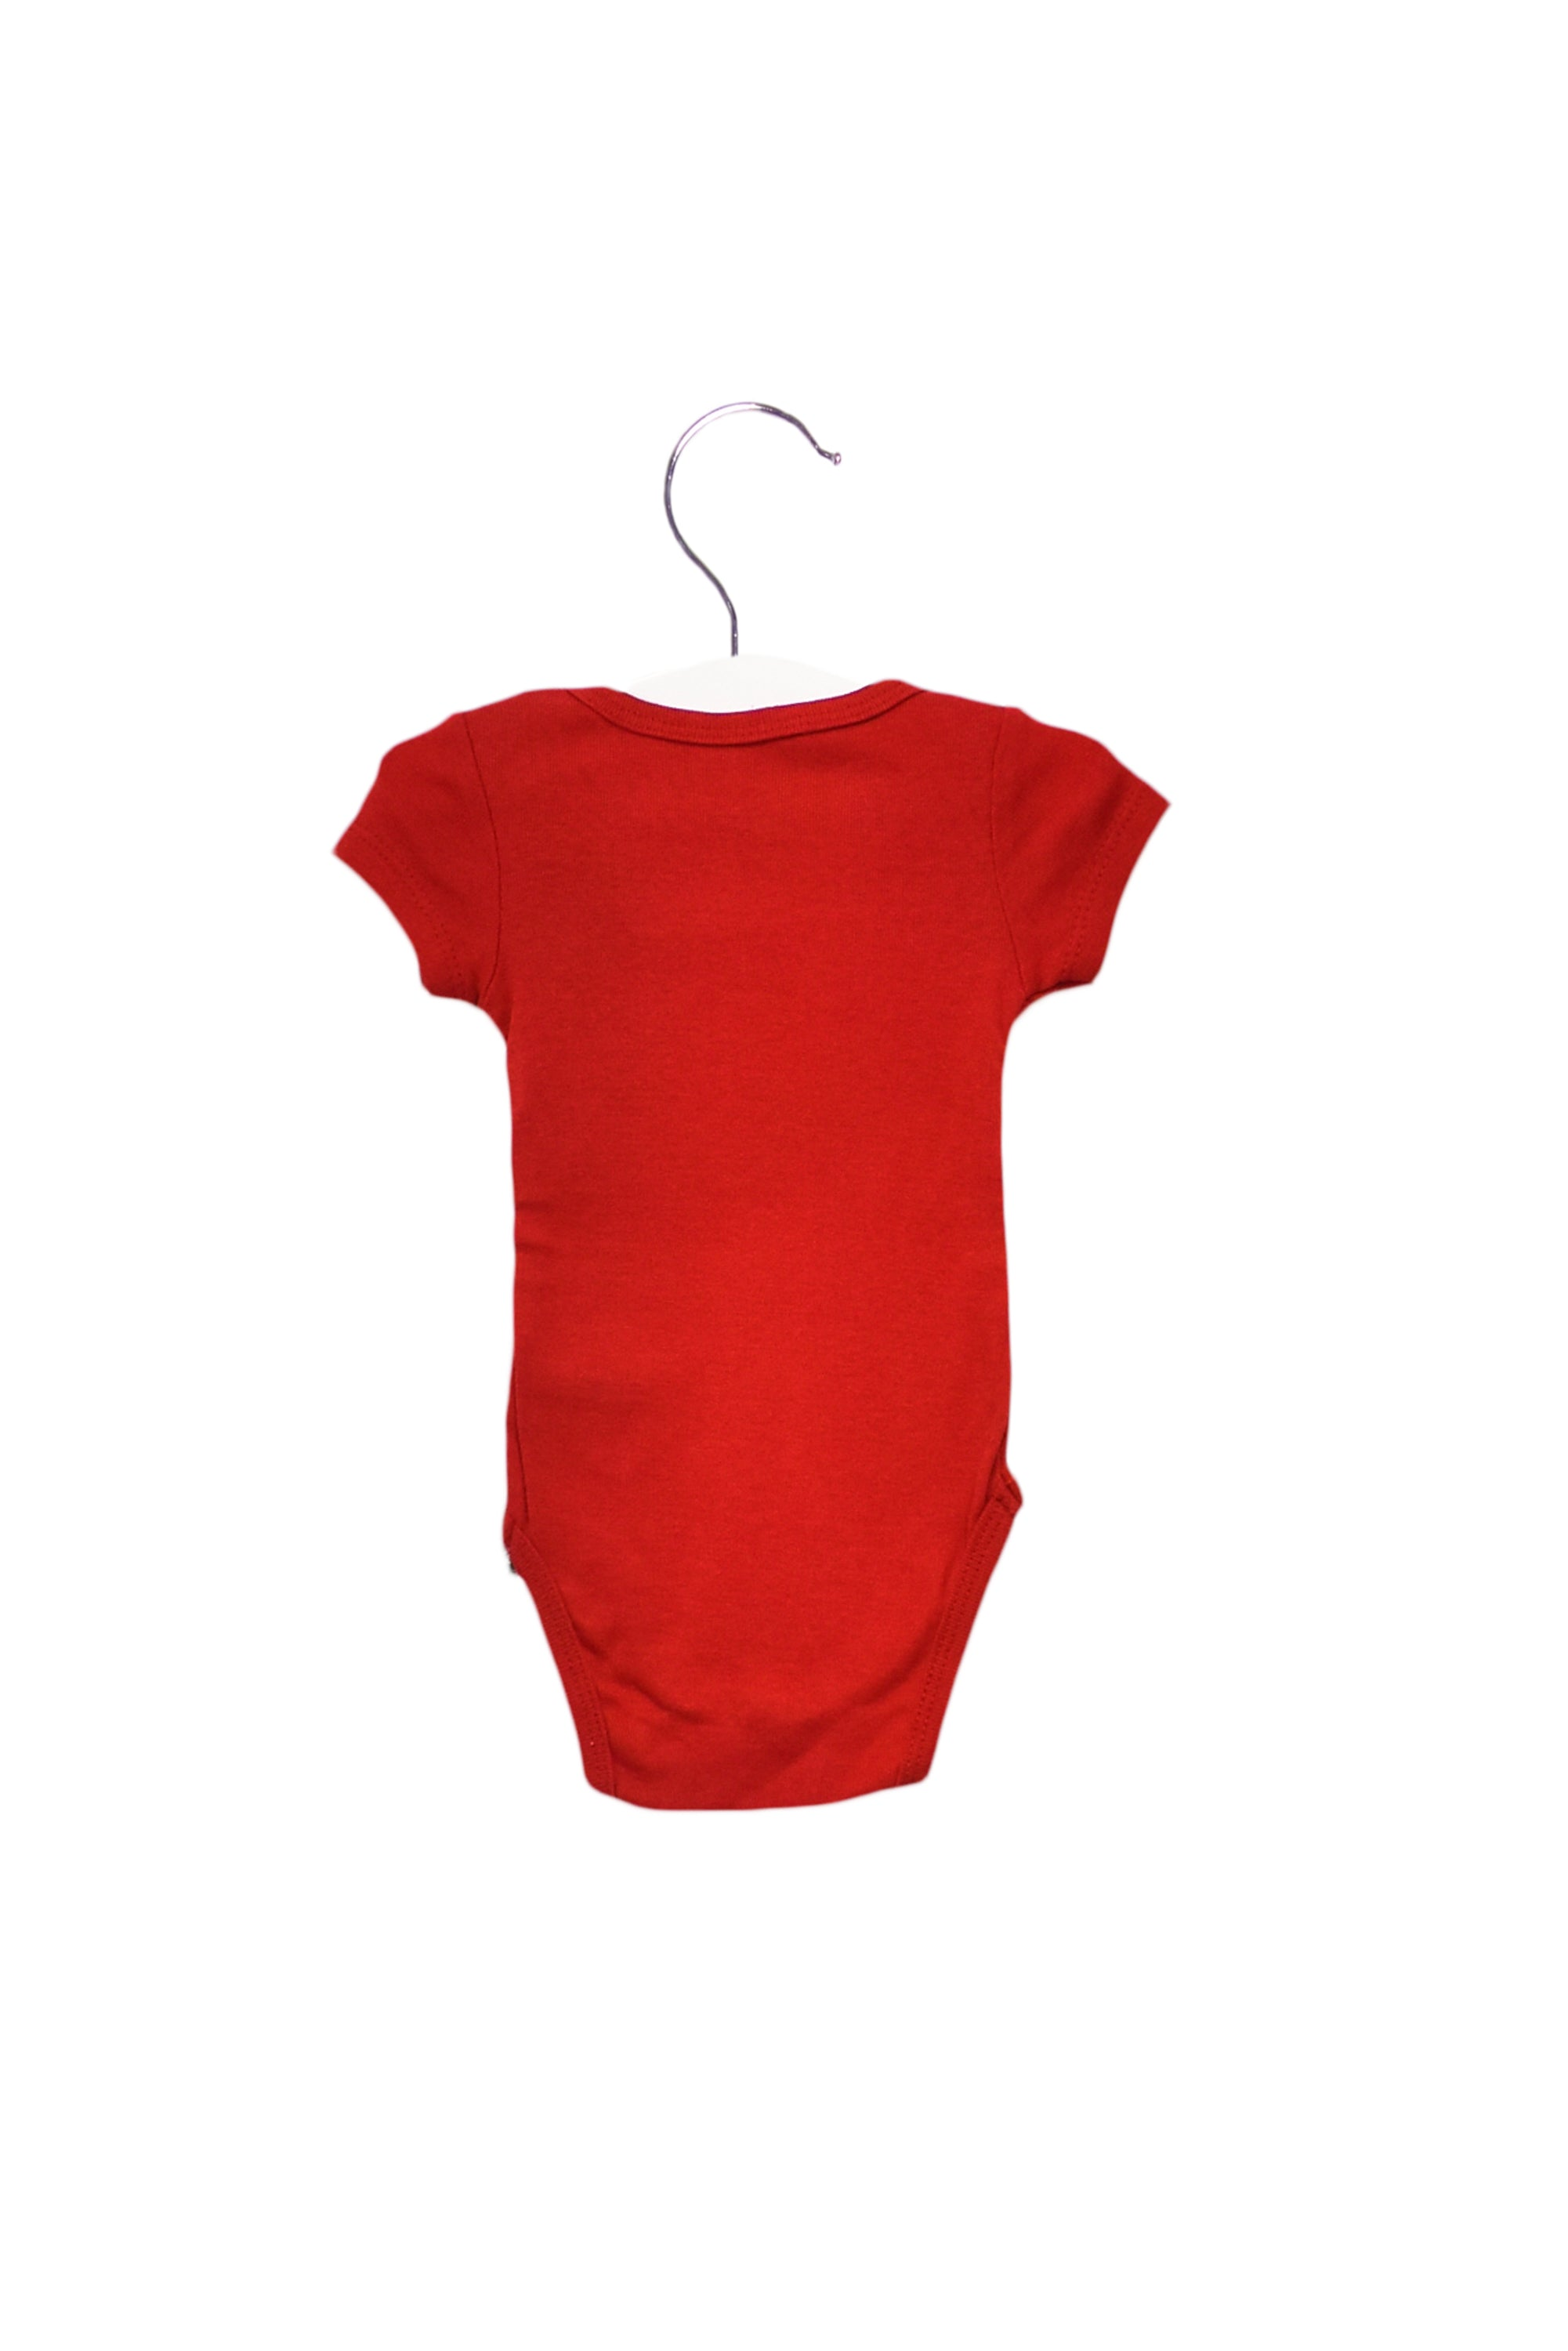 10026040 Tommy Hilfiger Baby~Bodysuit 0-3M at Retykle